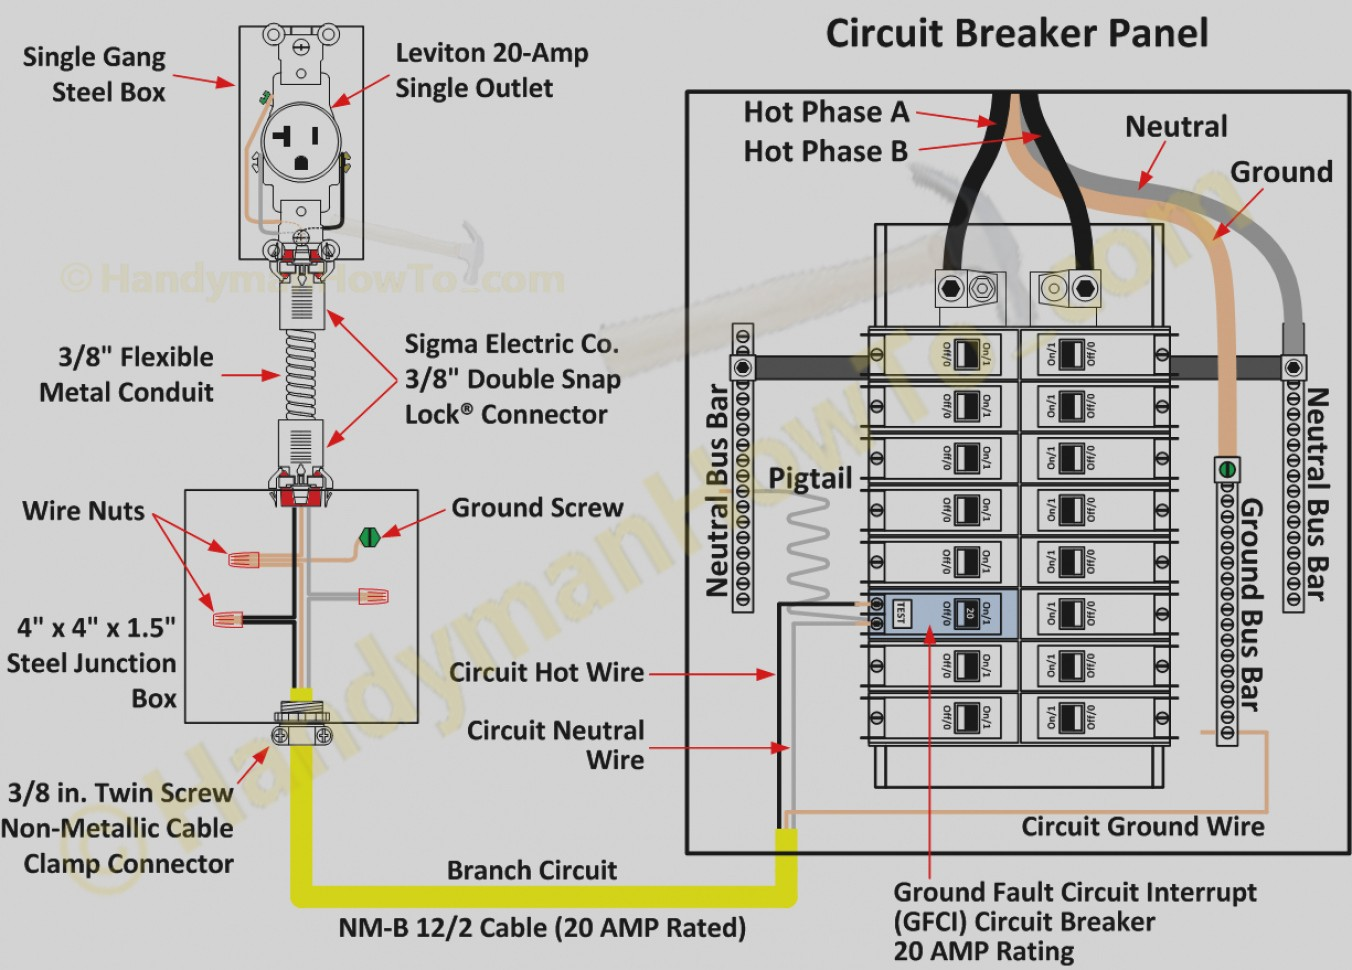 Main Service Panel Wiring Diagram Pdf - Auto Electrical Wiring Diagram •